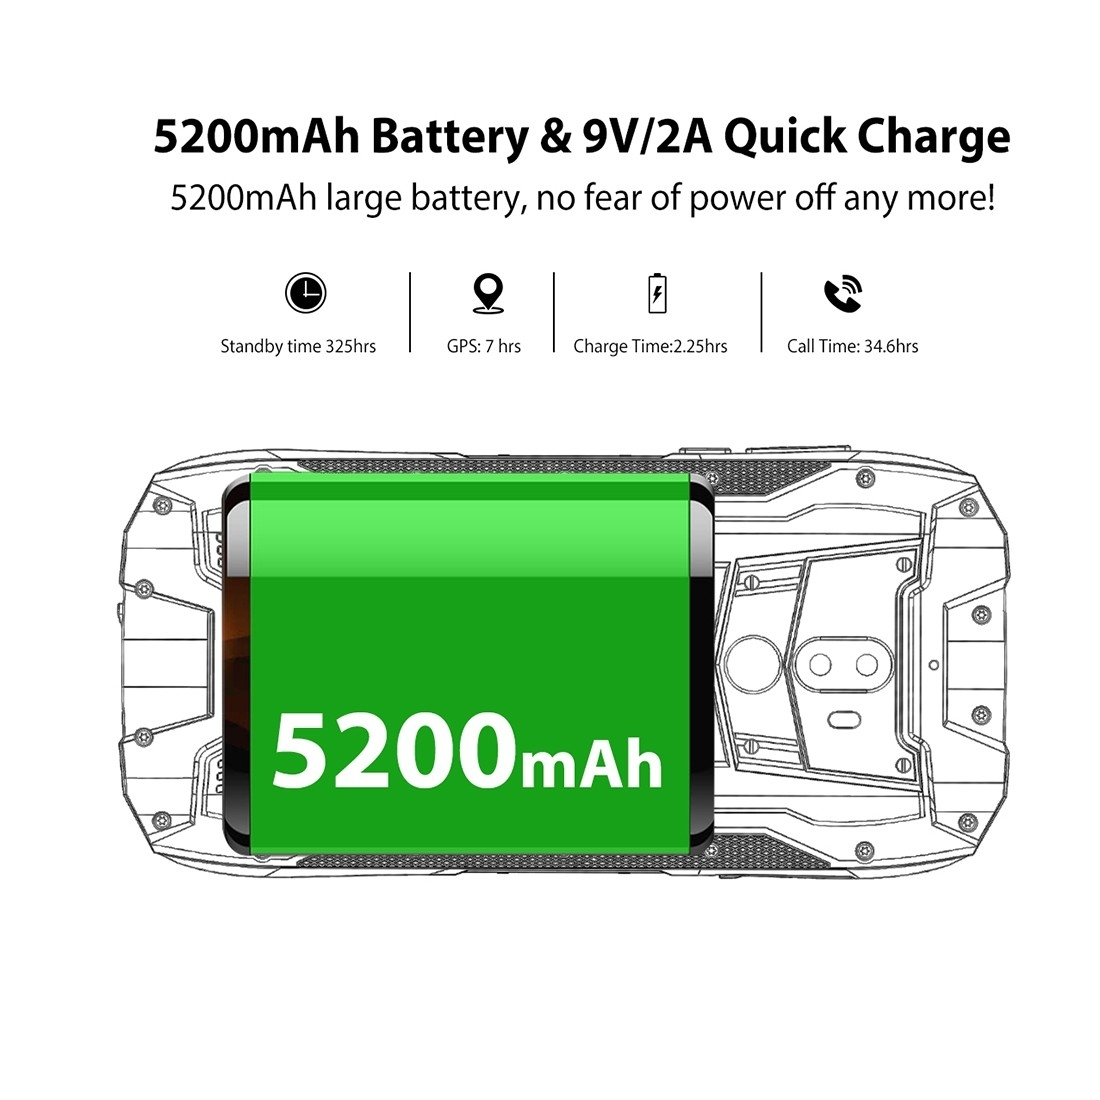 Buy Oukitel Wp5000 6gb 64gb 5200mah Battery 57 Inch Android 71 P25 Wiring Diagram Image